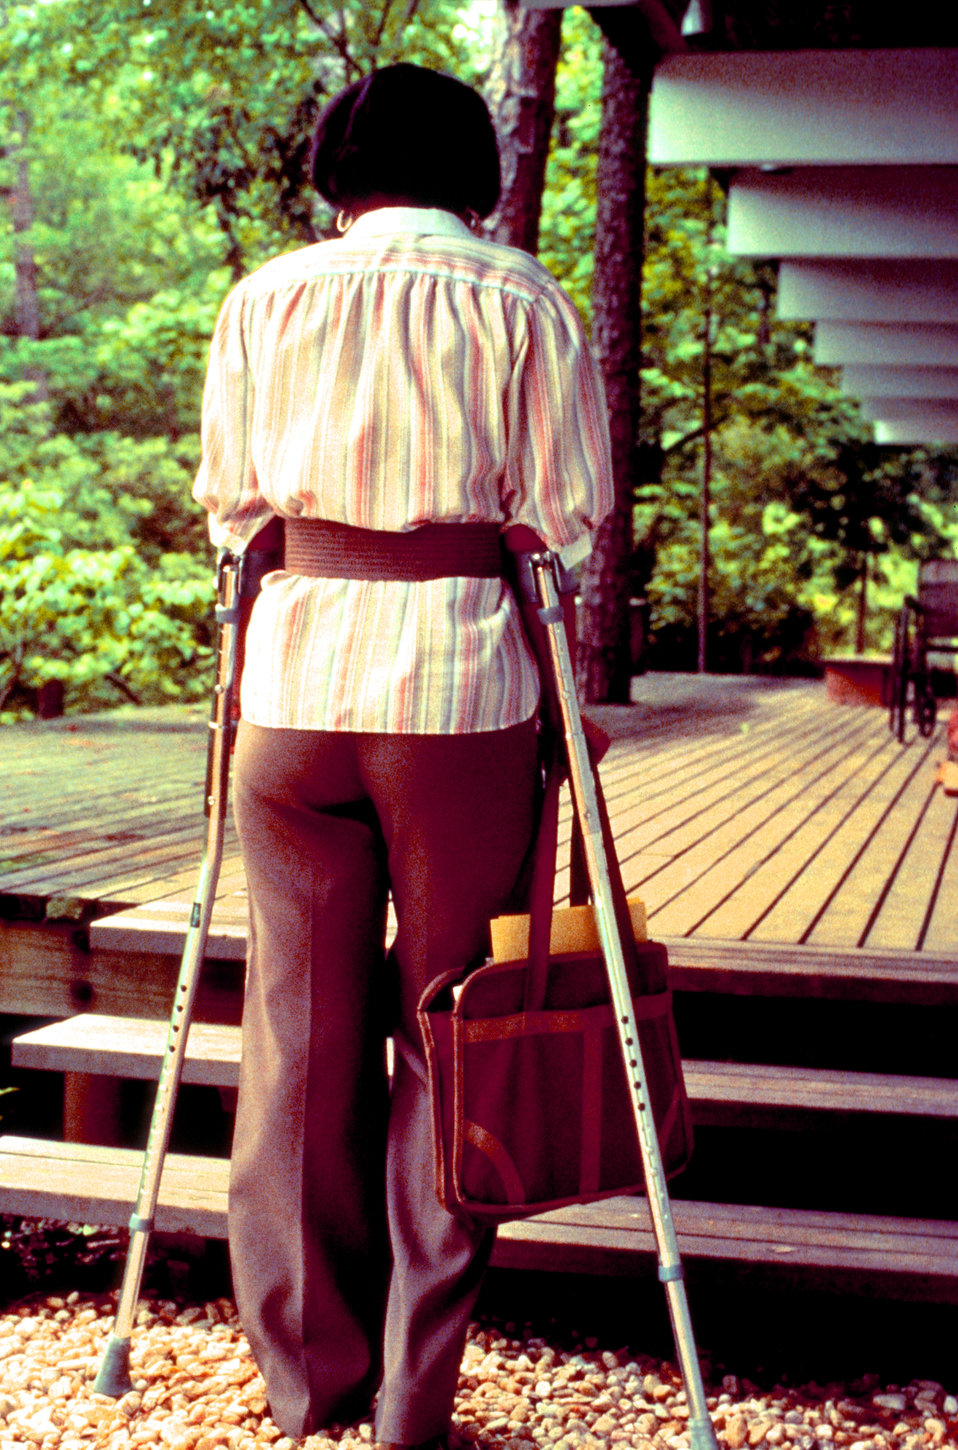 In an attempt to ascend to the next level of a wooden deck, this woman, who at the time was in need of crutches, was about to attempt her as